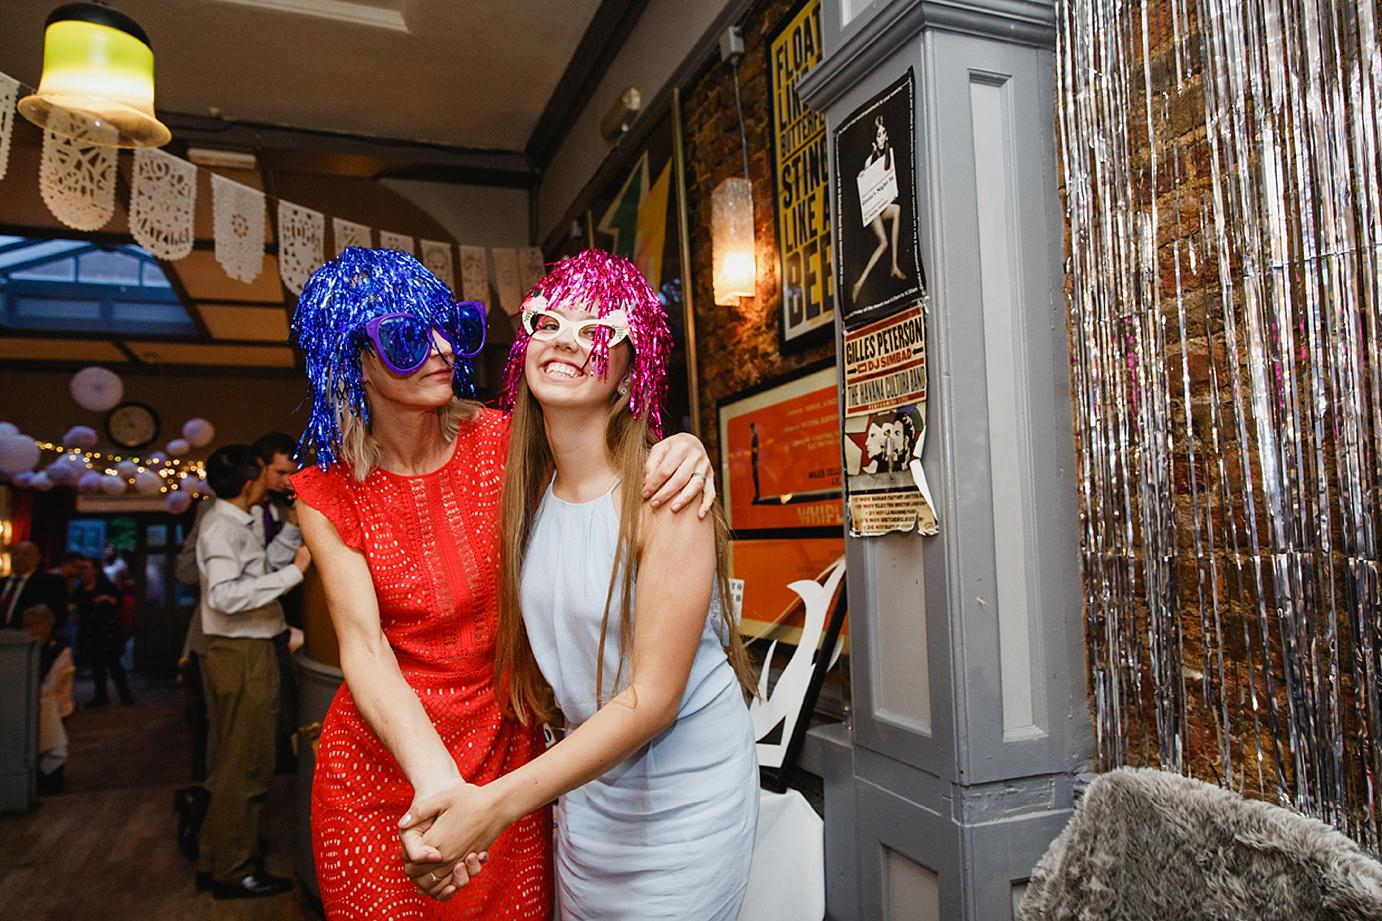 Londesborough pub wedding photography wedding guests at Photo Booth